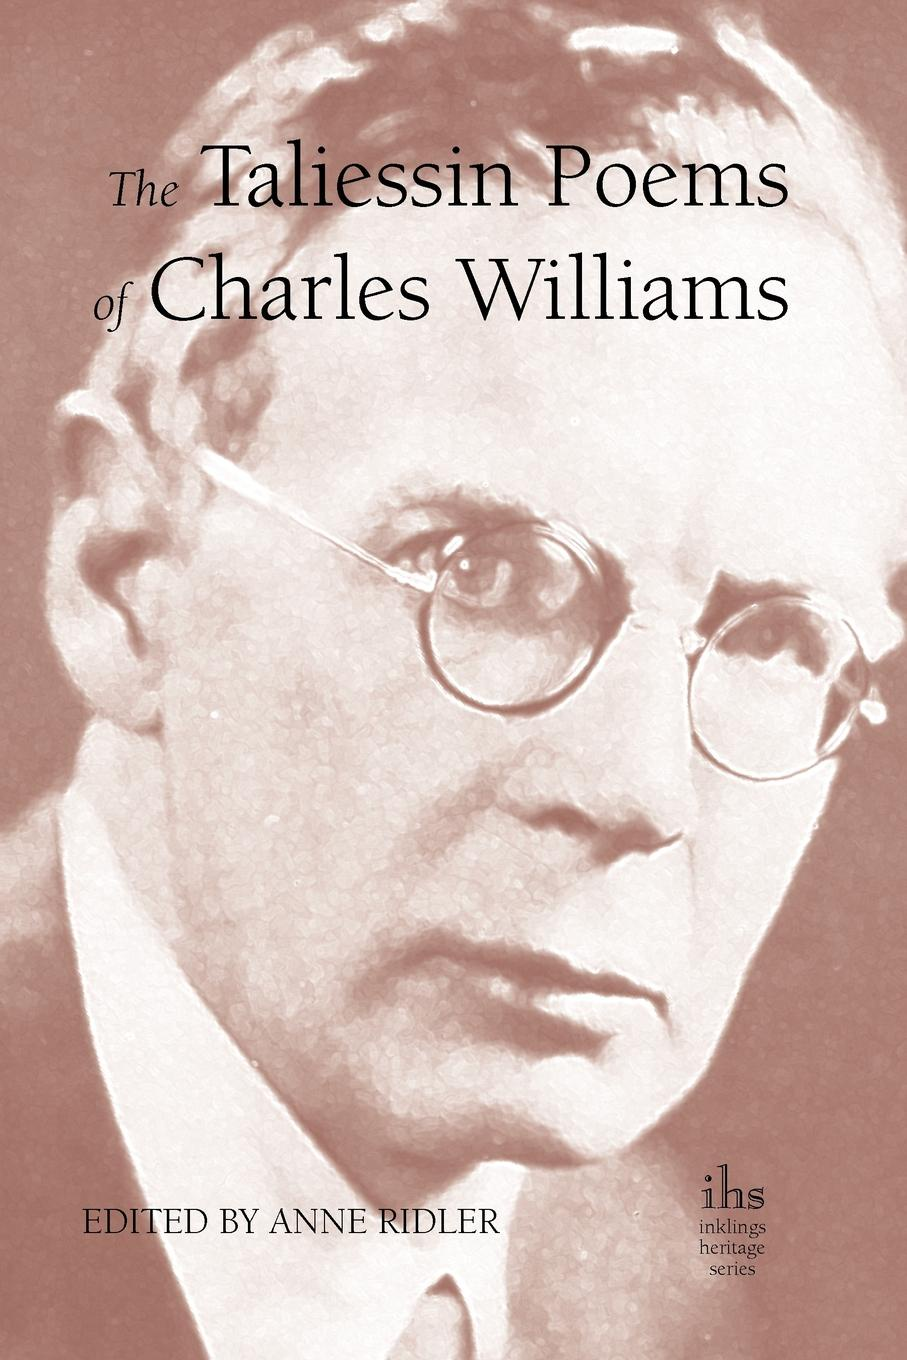 The Taliessin Poems of Charles Williams raymond williams keywords a vocabulary of culture and society